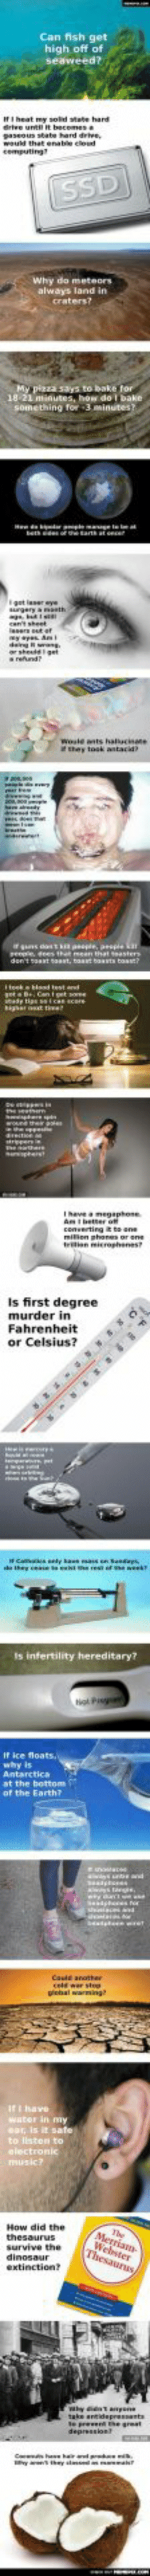 23 Science Questions That Push The Limits Of Human Stupidityomg-humor.tumblr.com: Can fish get  high off of  seaweed?  IFI heat my solid state hard  drtve until it becomesa  paseous state hand drive  would that enate cloud  cemputing  SSD  Why do meteors  always land in  মে ?  My pizza says to bake for  18-21 minutes, how do I bake  something for 3 minutes?  teth  or taat oncer  Tiastianer eye  urgery a masth  Cant shent  lasern ut ef  y yes A  arsheddget  rehund  Woule ants hallucina  ithey took antaci  andererert  uns donta people, pesple ar  reople, dees that mean that teasters  den't saant saast, taat bata btosst  Iteek d test ad  geta Be. Can i pet soe  ady tipe can Care  igert tie  wounethe e  rpers  terst  Ihave a megphone  Ant better o  converting to ene  milion phone or ene  trlen mierophenest  Is first degree  murder in  Fahrenheit  or Celsius?  Ca s nty ka enend  de they ceseetheref e  Is infertility hereditary?  If ice floats.  why is  Antarctica  at the bottom  of the Earth?  atetece ere  Could anonher  celd wer stop  giobal warming  Iti have  water in my  car, is it safe  to listen to  alectronic  music?  How did the  thesaurus  Merriam  The  Webster  Thesaurus  survive the  dinosaur  extinction?  why entnyen  Tampona  take antidepressent  preet the grest  depession  C hae harpr .  y thy st aer 23 Science Questions That Push The Limits Of Human Stupidityomg-humor.tumblr.com